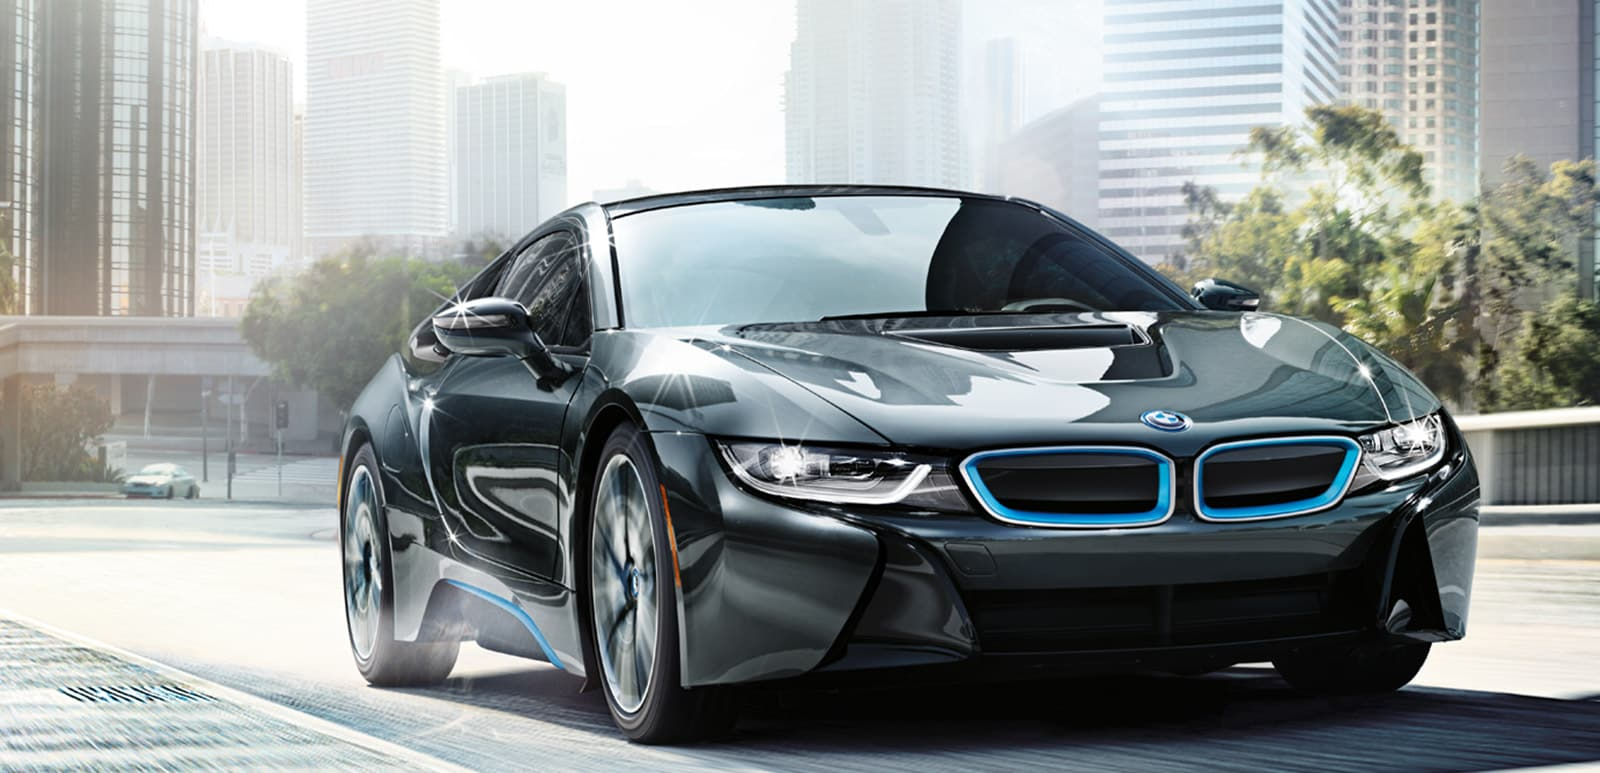 Bmw Certified Pre Owned >> BMW i8 Model Overview - BMW North America